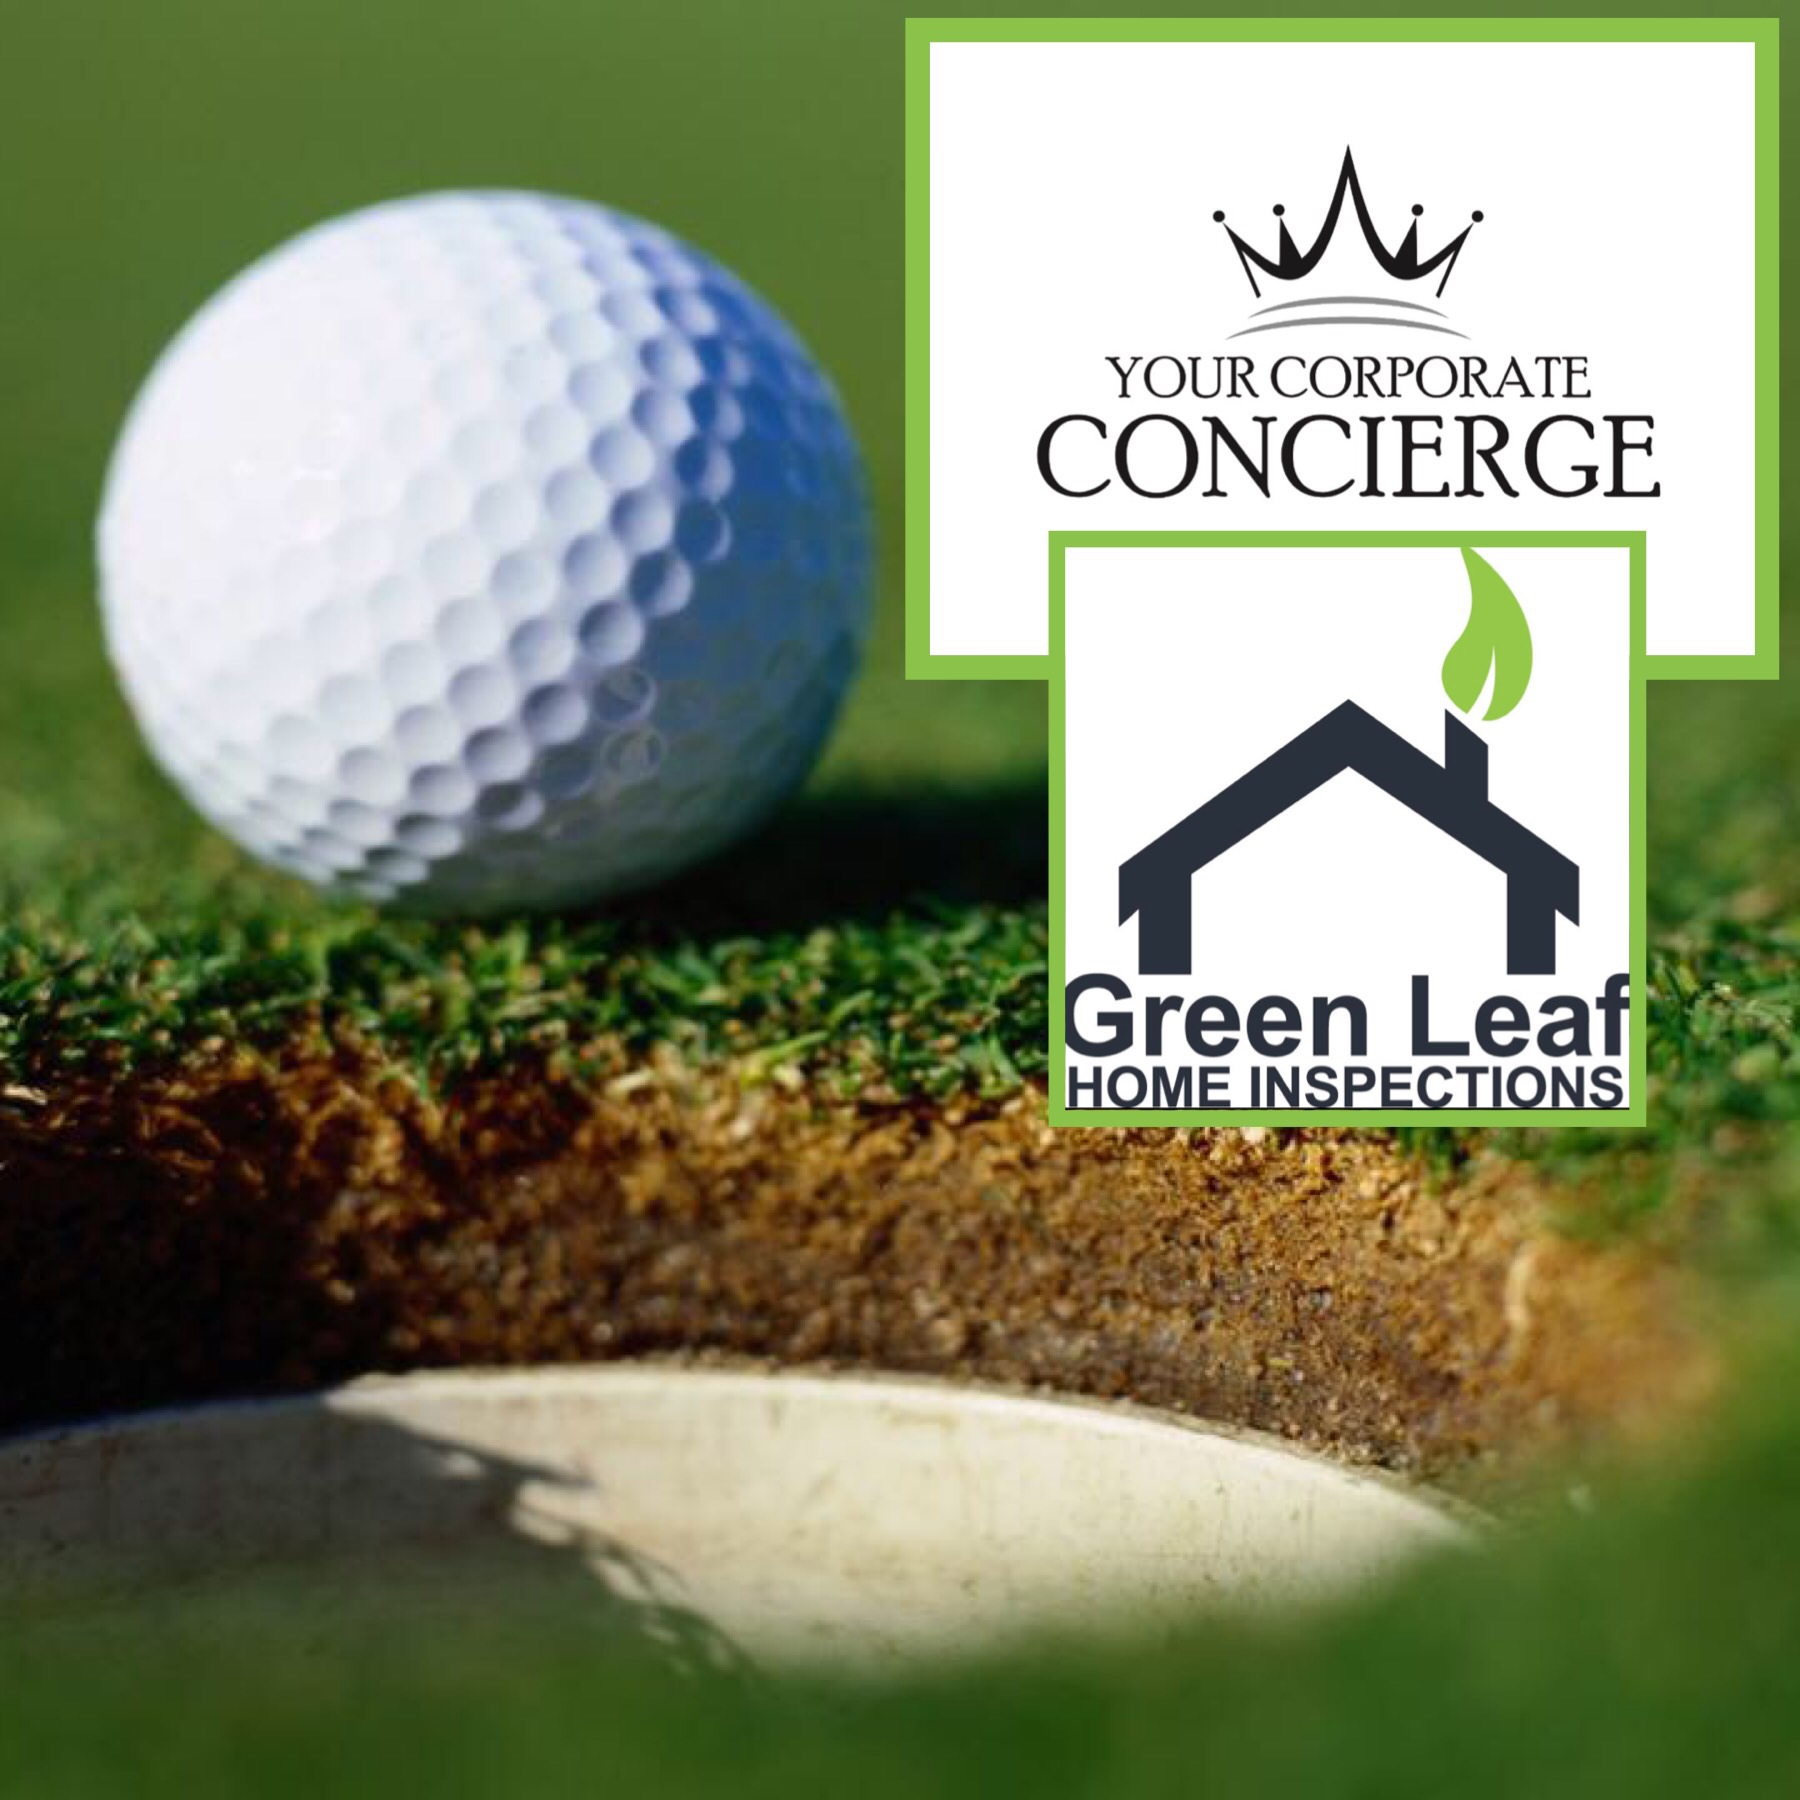 So excited to represent Green Leaf Home Inspections at the LGAAR Annual Golf Scramble 8/22/19. Need help lead generating at your hole sponsorship?